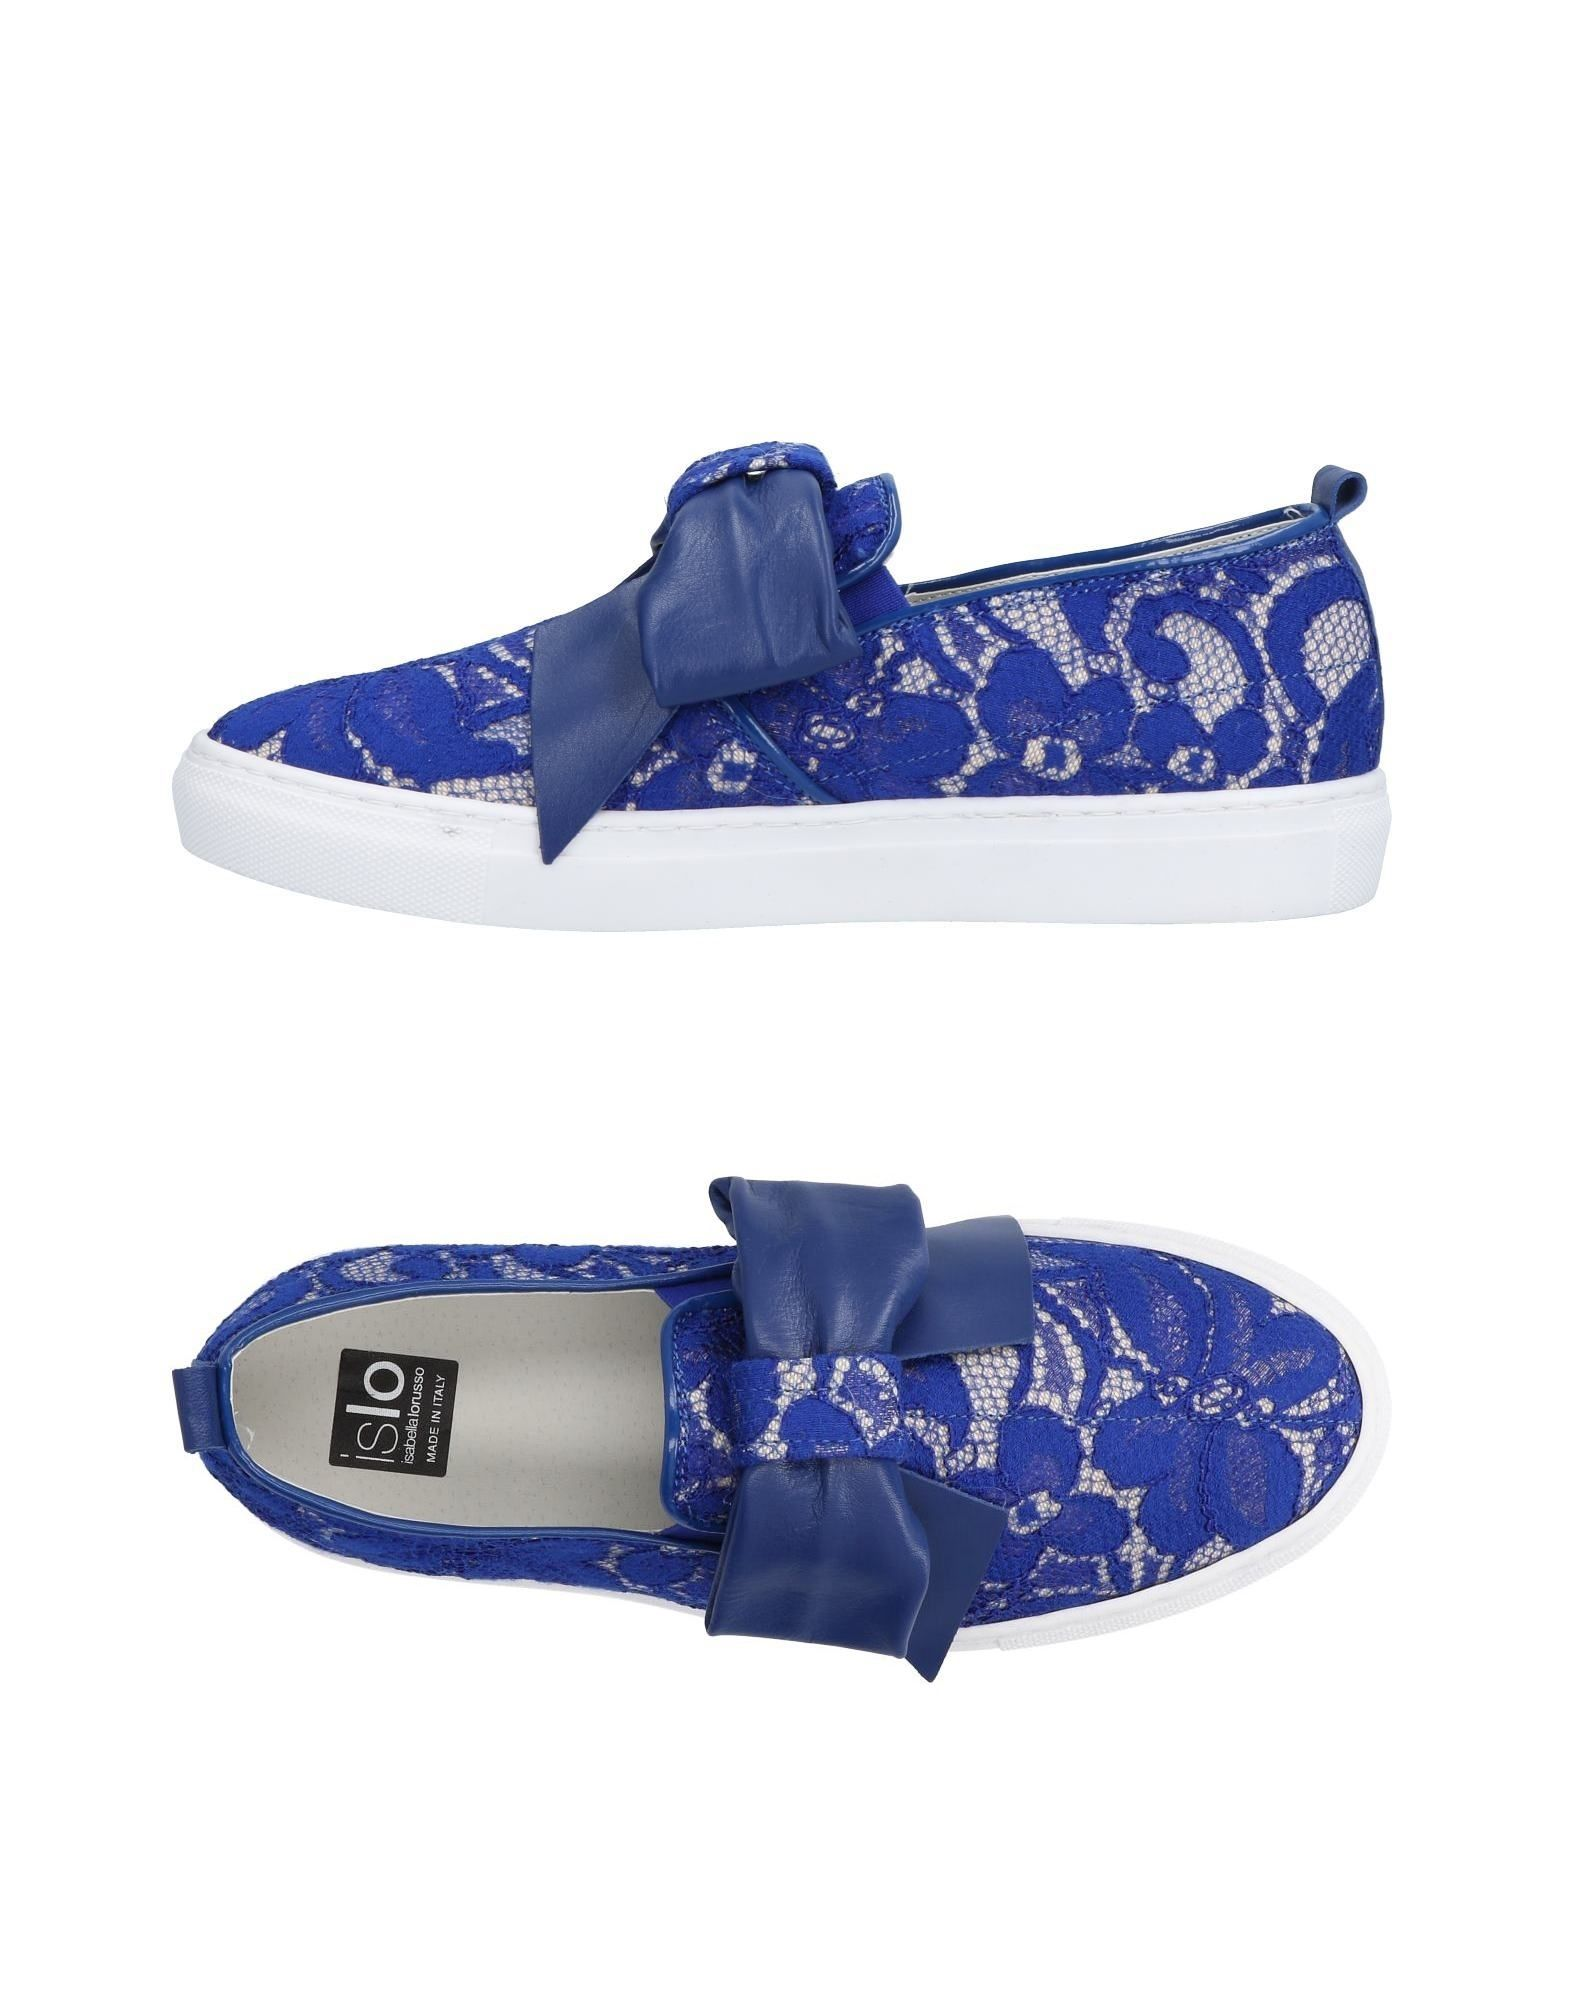 Sneakers Islo Isabella Lorusso Donna - 11471224TL